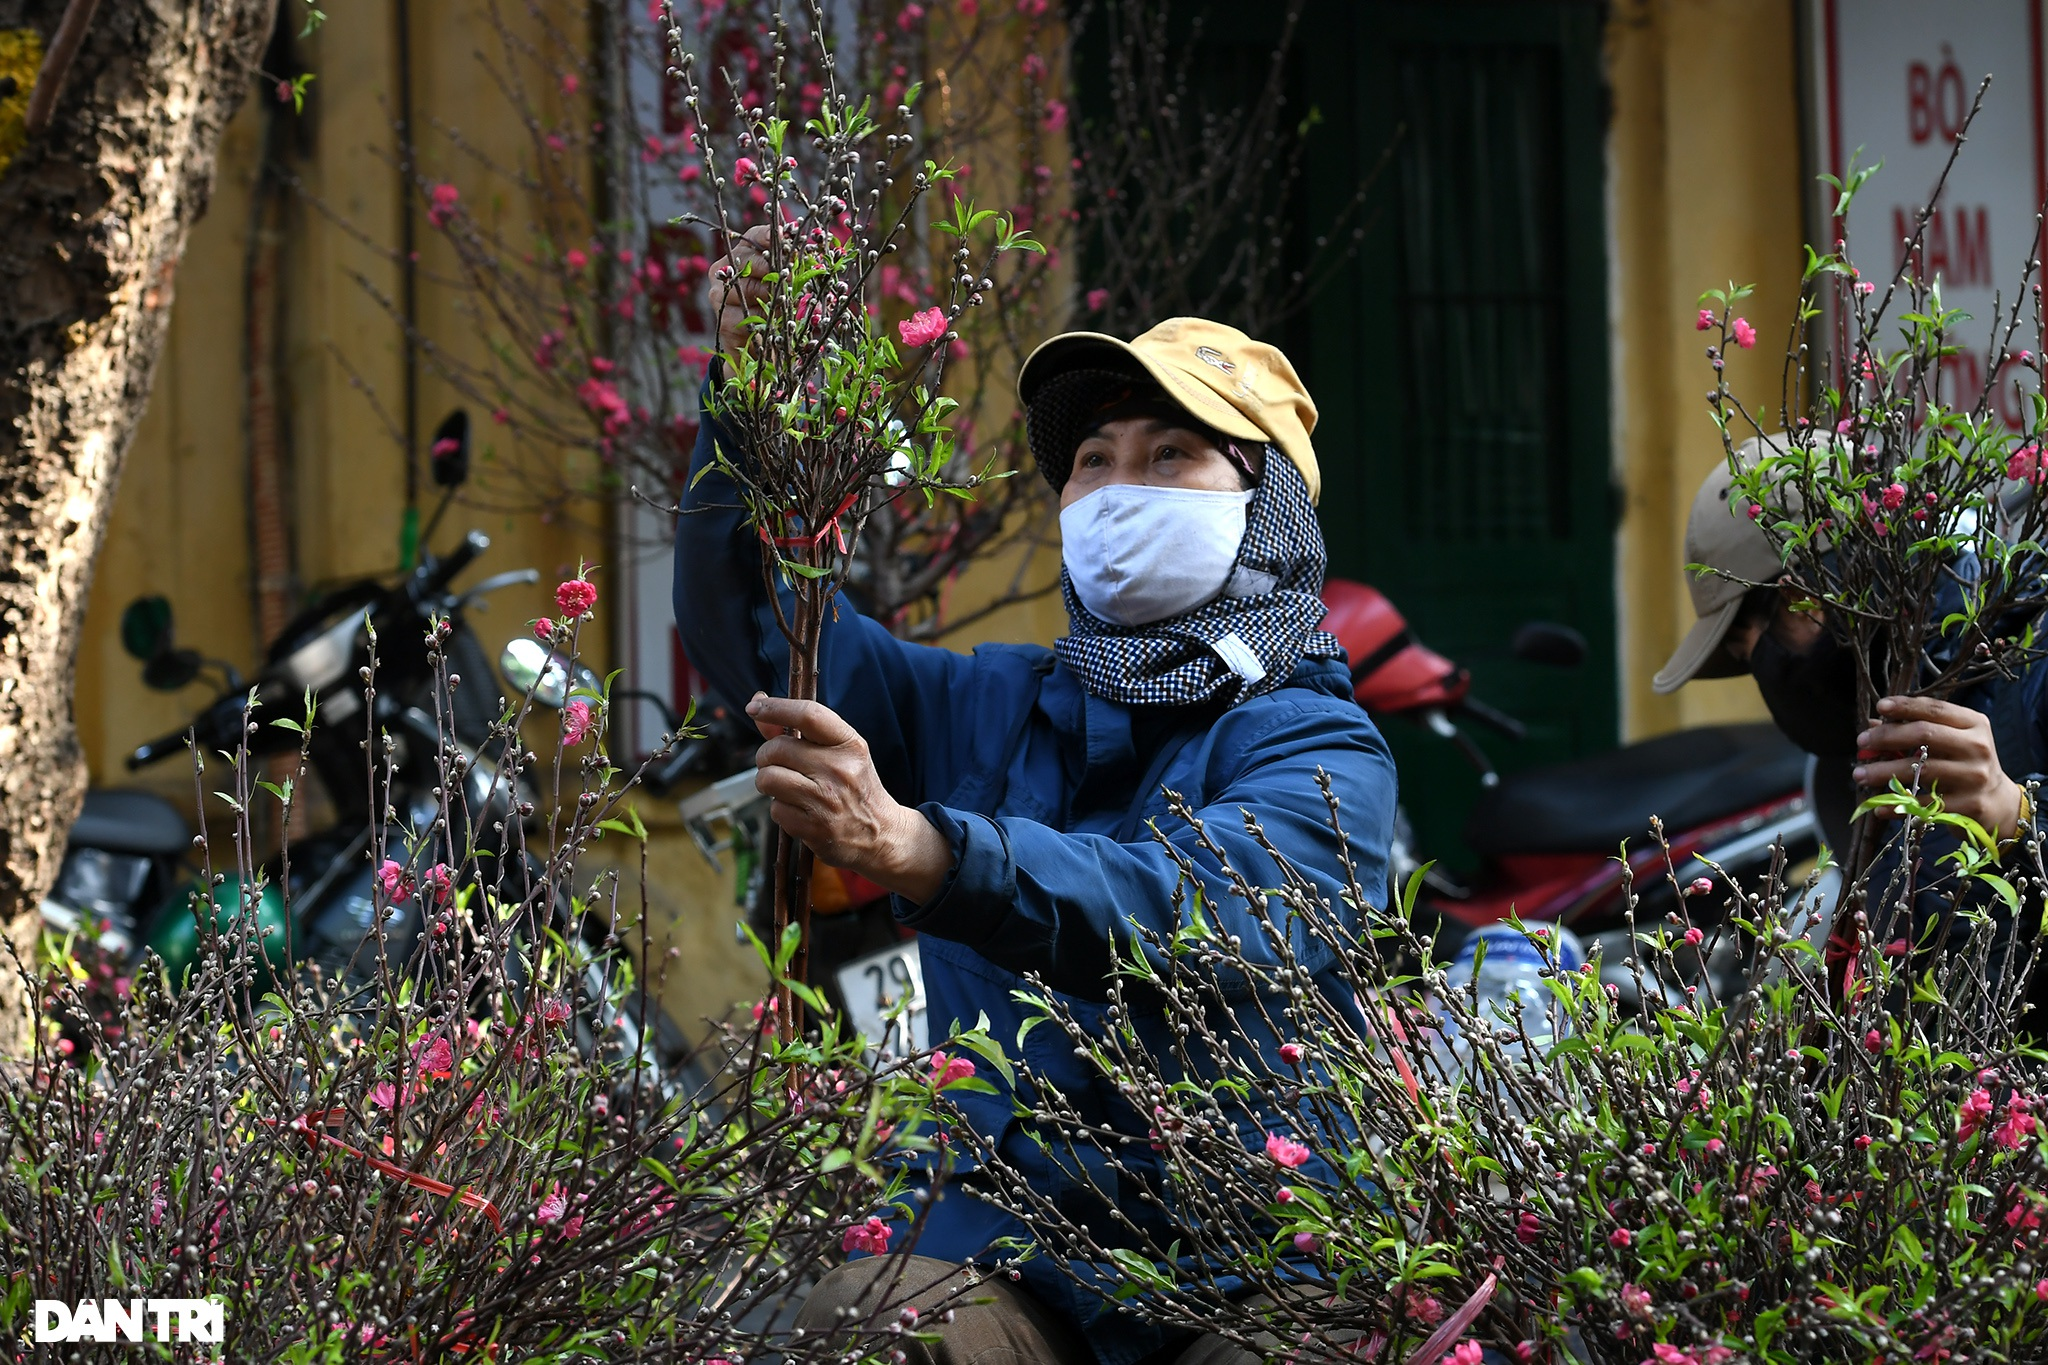 The sunshine came back and filled the streets of Hanoi on the 29th of Tet - 5